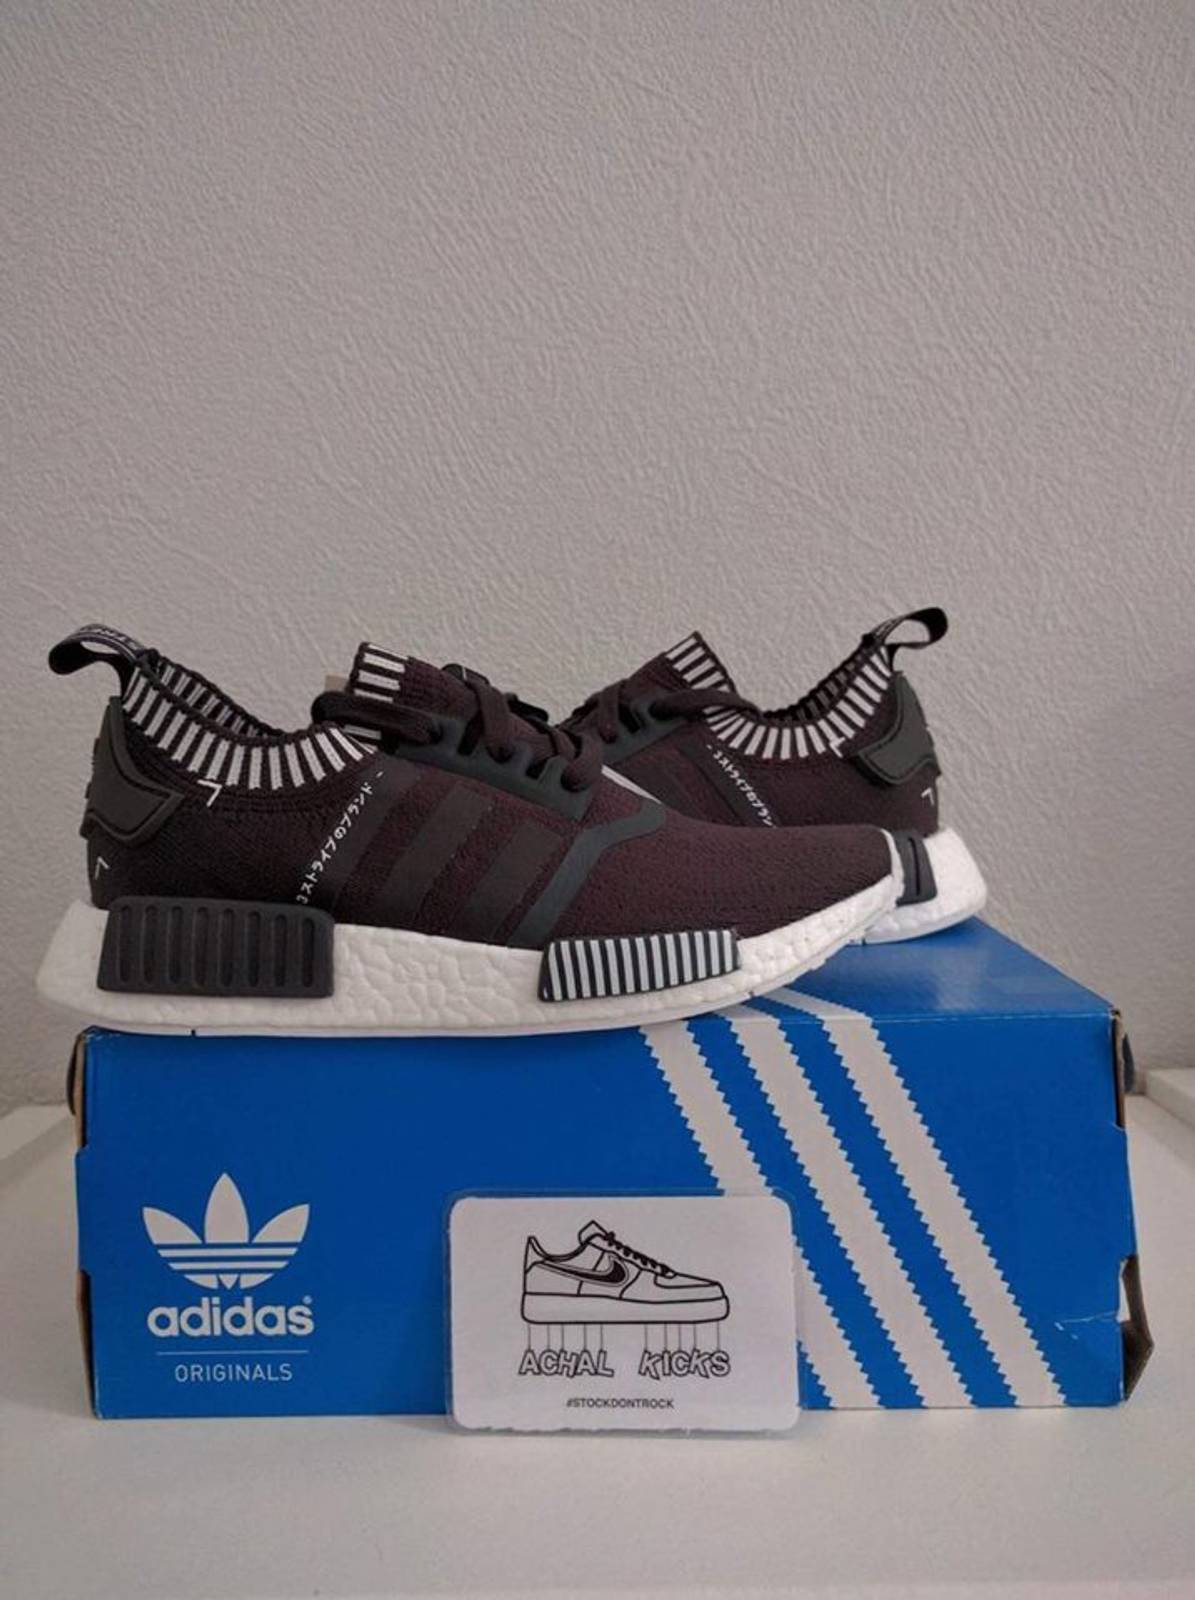 BB 3123 adidas NMD R1 X Bedwin Collab Runners SNEAKERS Gray